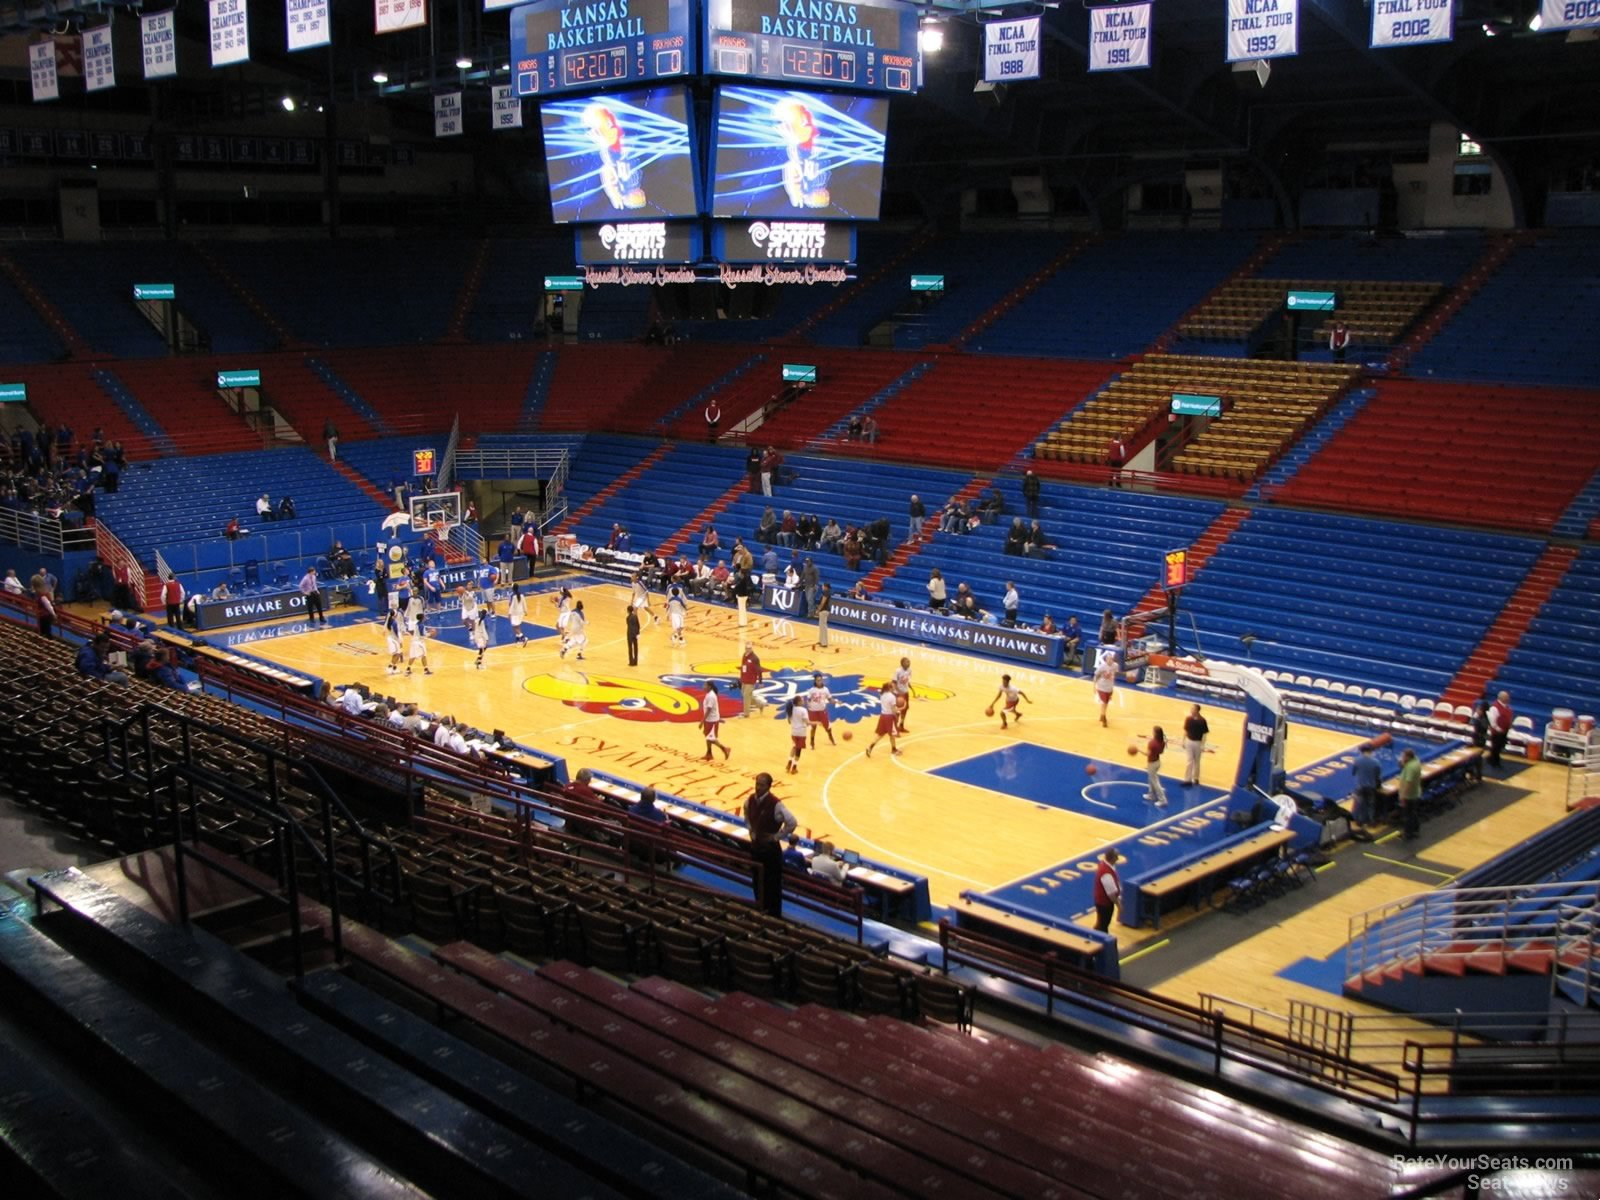 Seat View for Allen Fieldhouse Section 3, Row 18